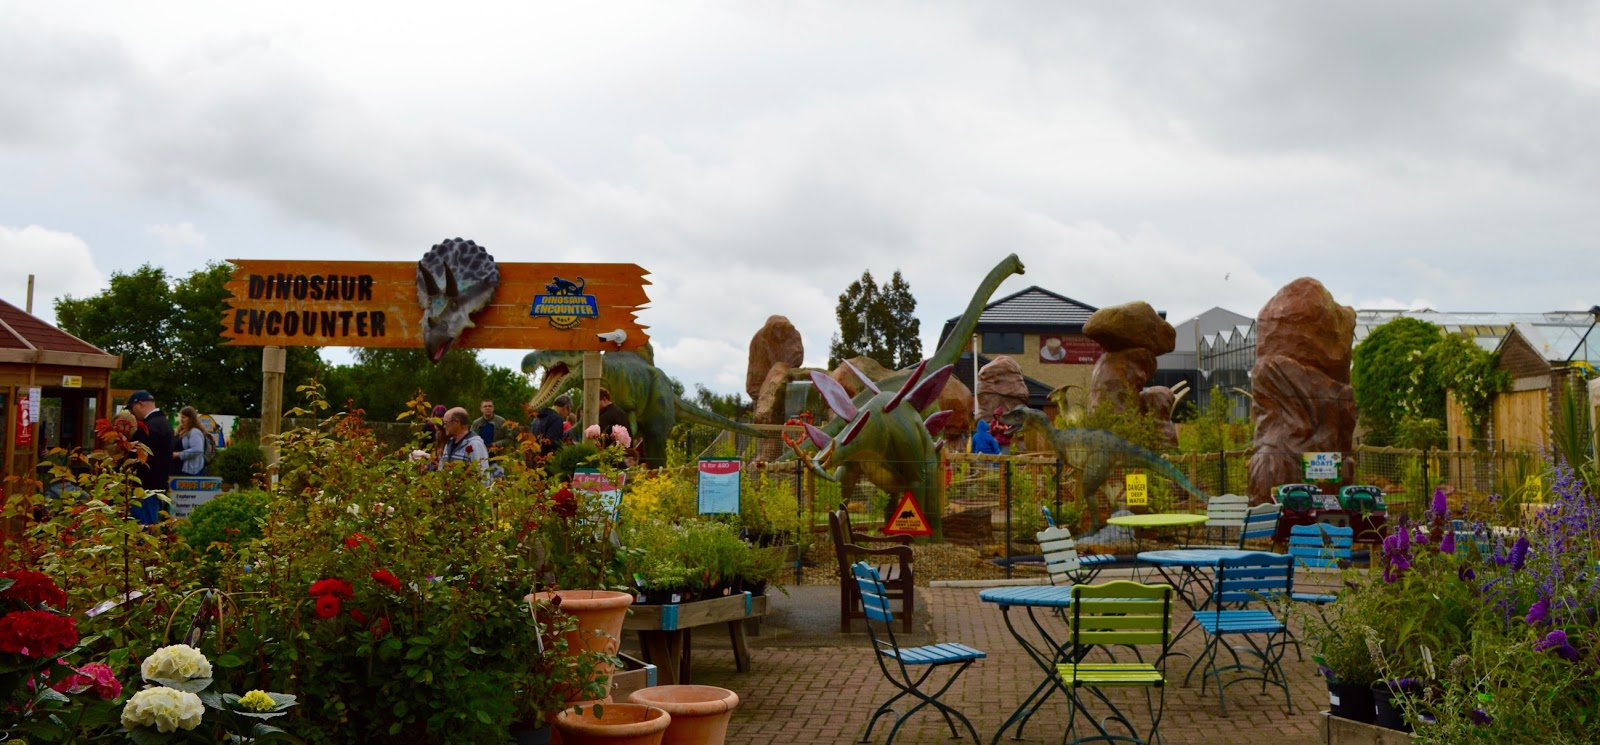 A Guide to The Best Family Days Out in the North East including Dinosaur Golf at Heighley Gate Garden Centre